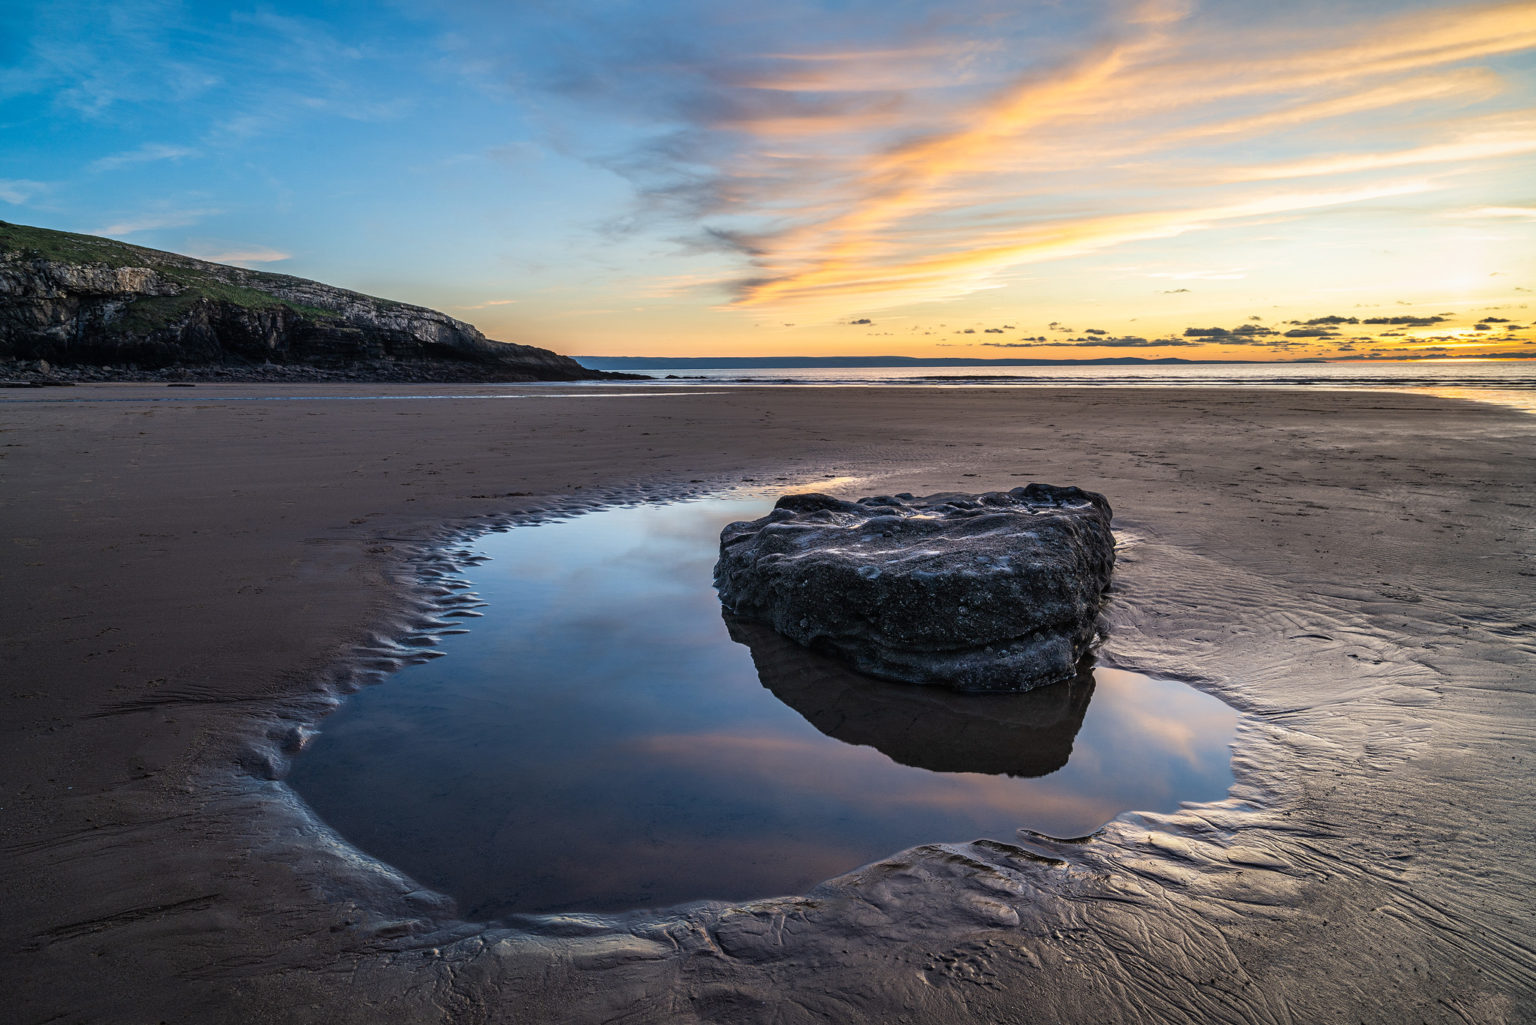 Dunraven Bay Sunset - Southerndown Beach – Wales Landscape Photography